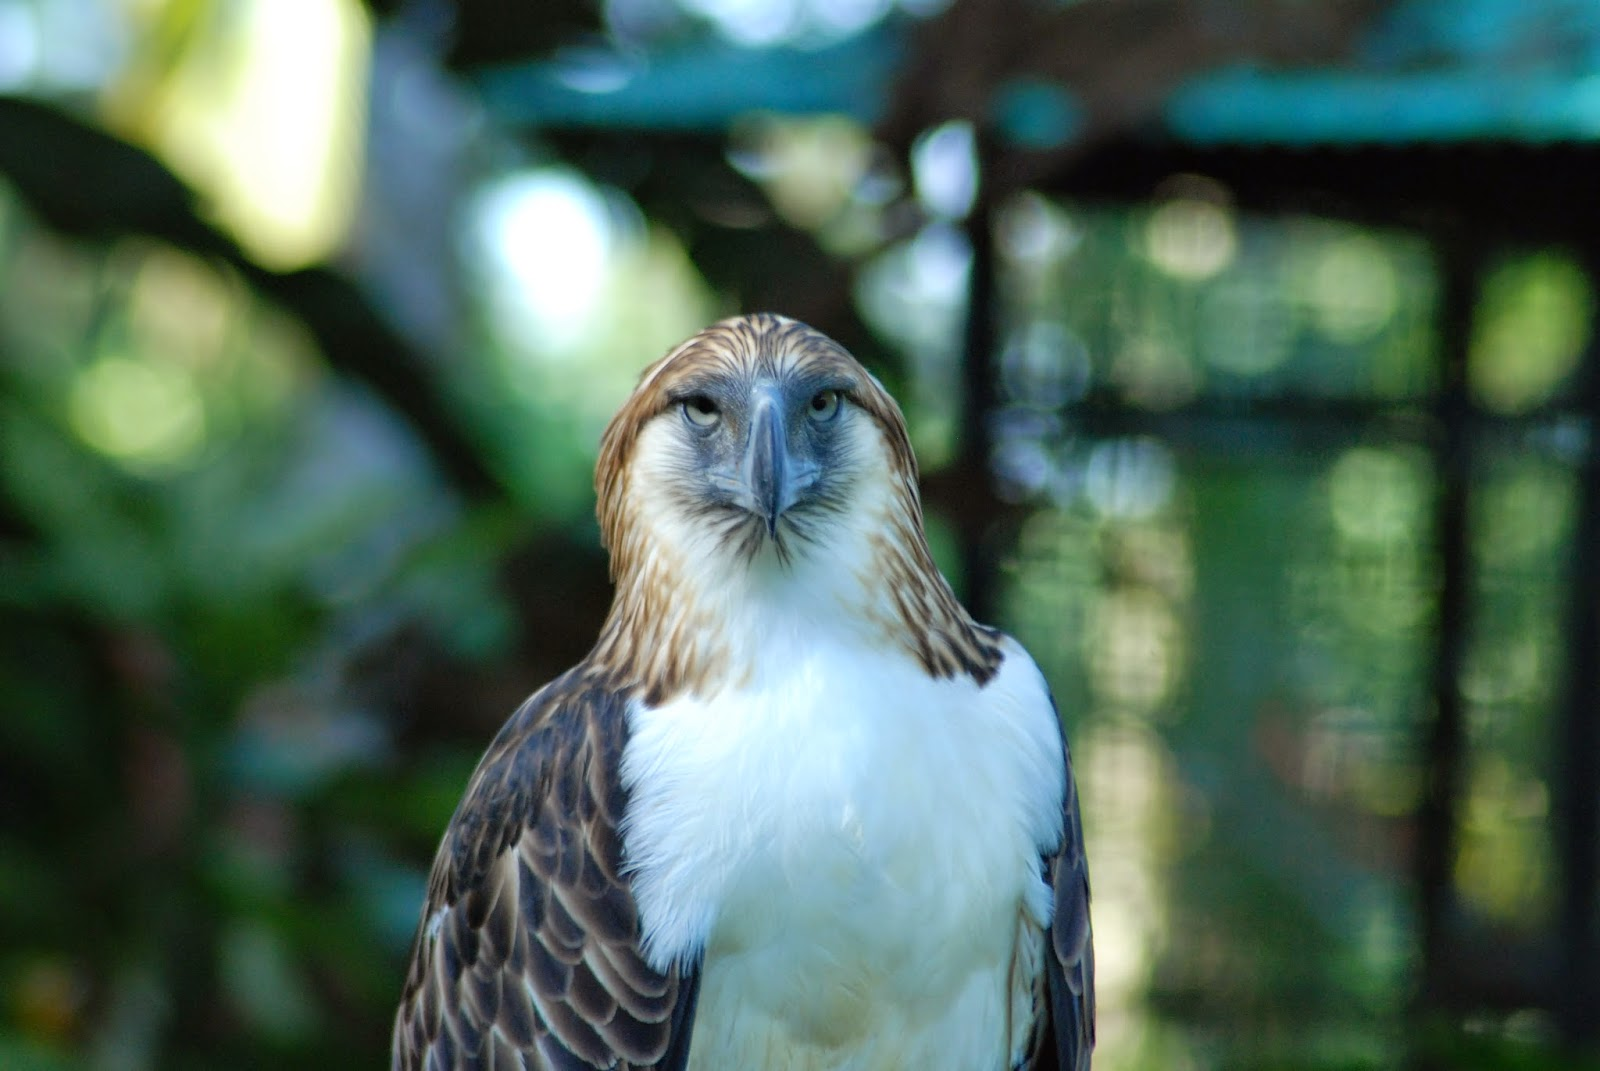 http://mytravel-asia.com/pois/102875-Philippine-Eagle-Center